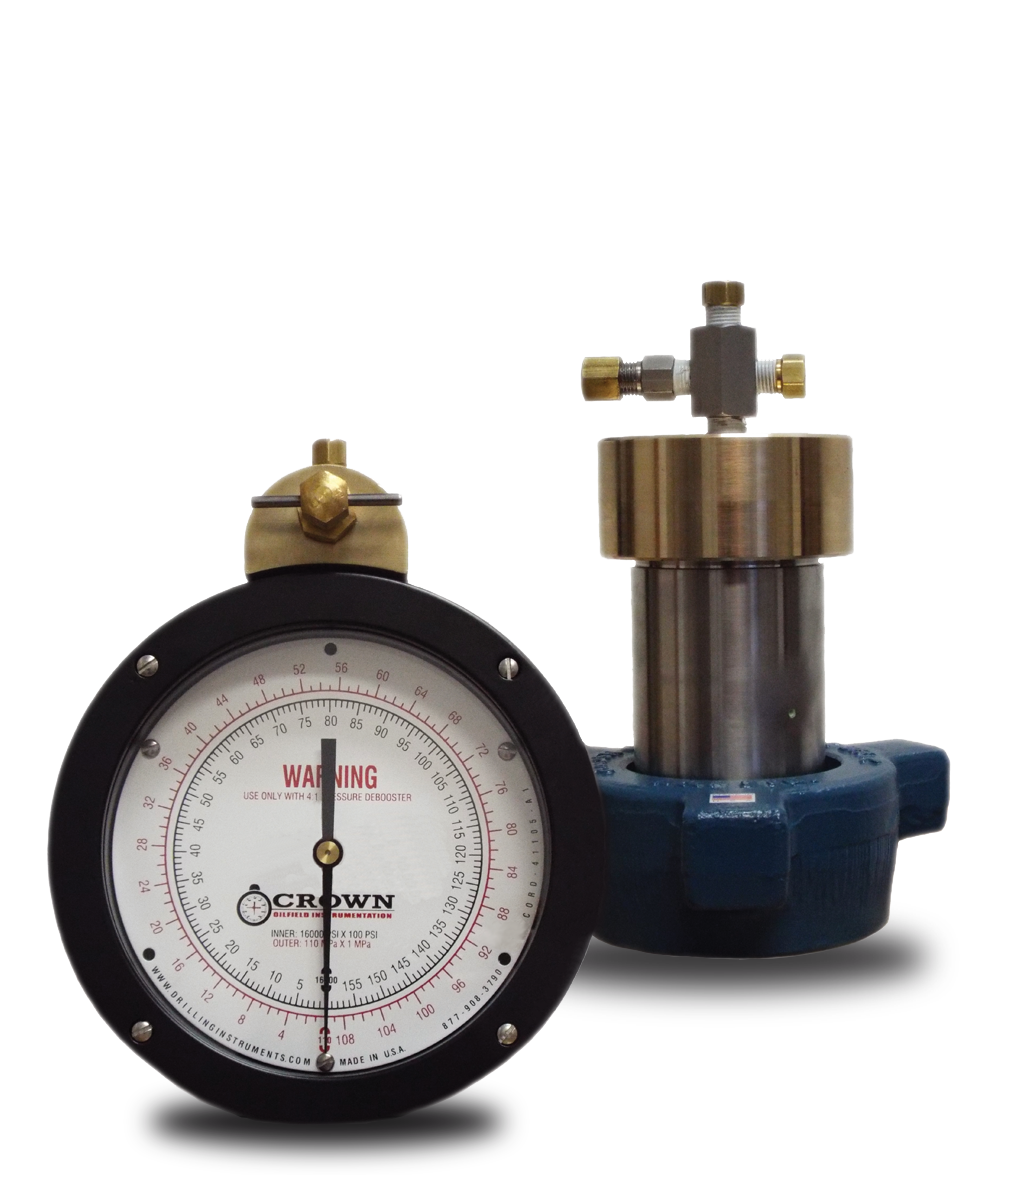 img/homemessagepic.png